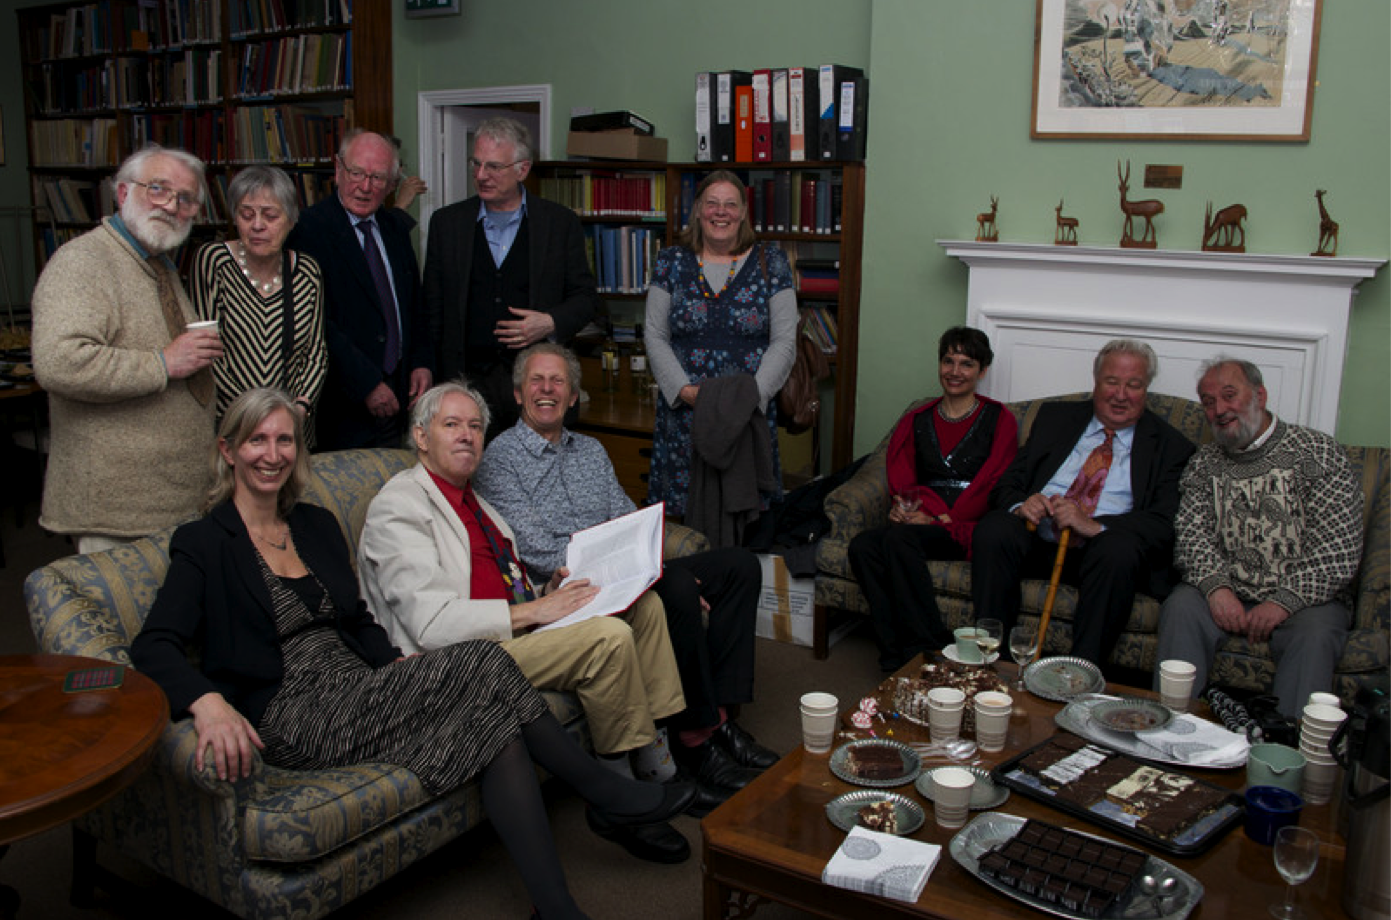 essays in honour of ian brownlie Professor ian brownlie, cbe, oc, fba, dcl retired from the chichele chair of public international law at the university of oxford, a post that he has held since 1980.